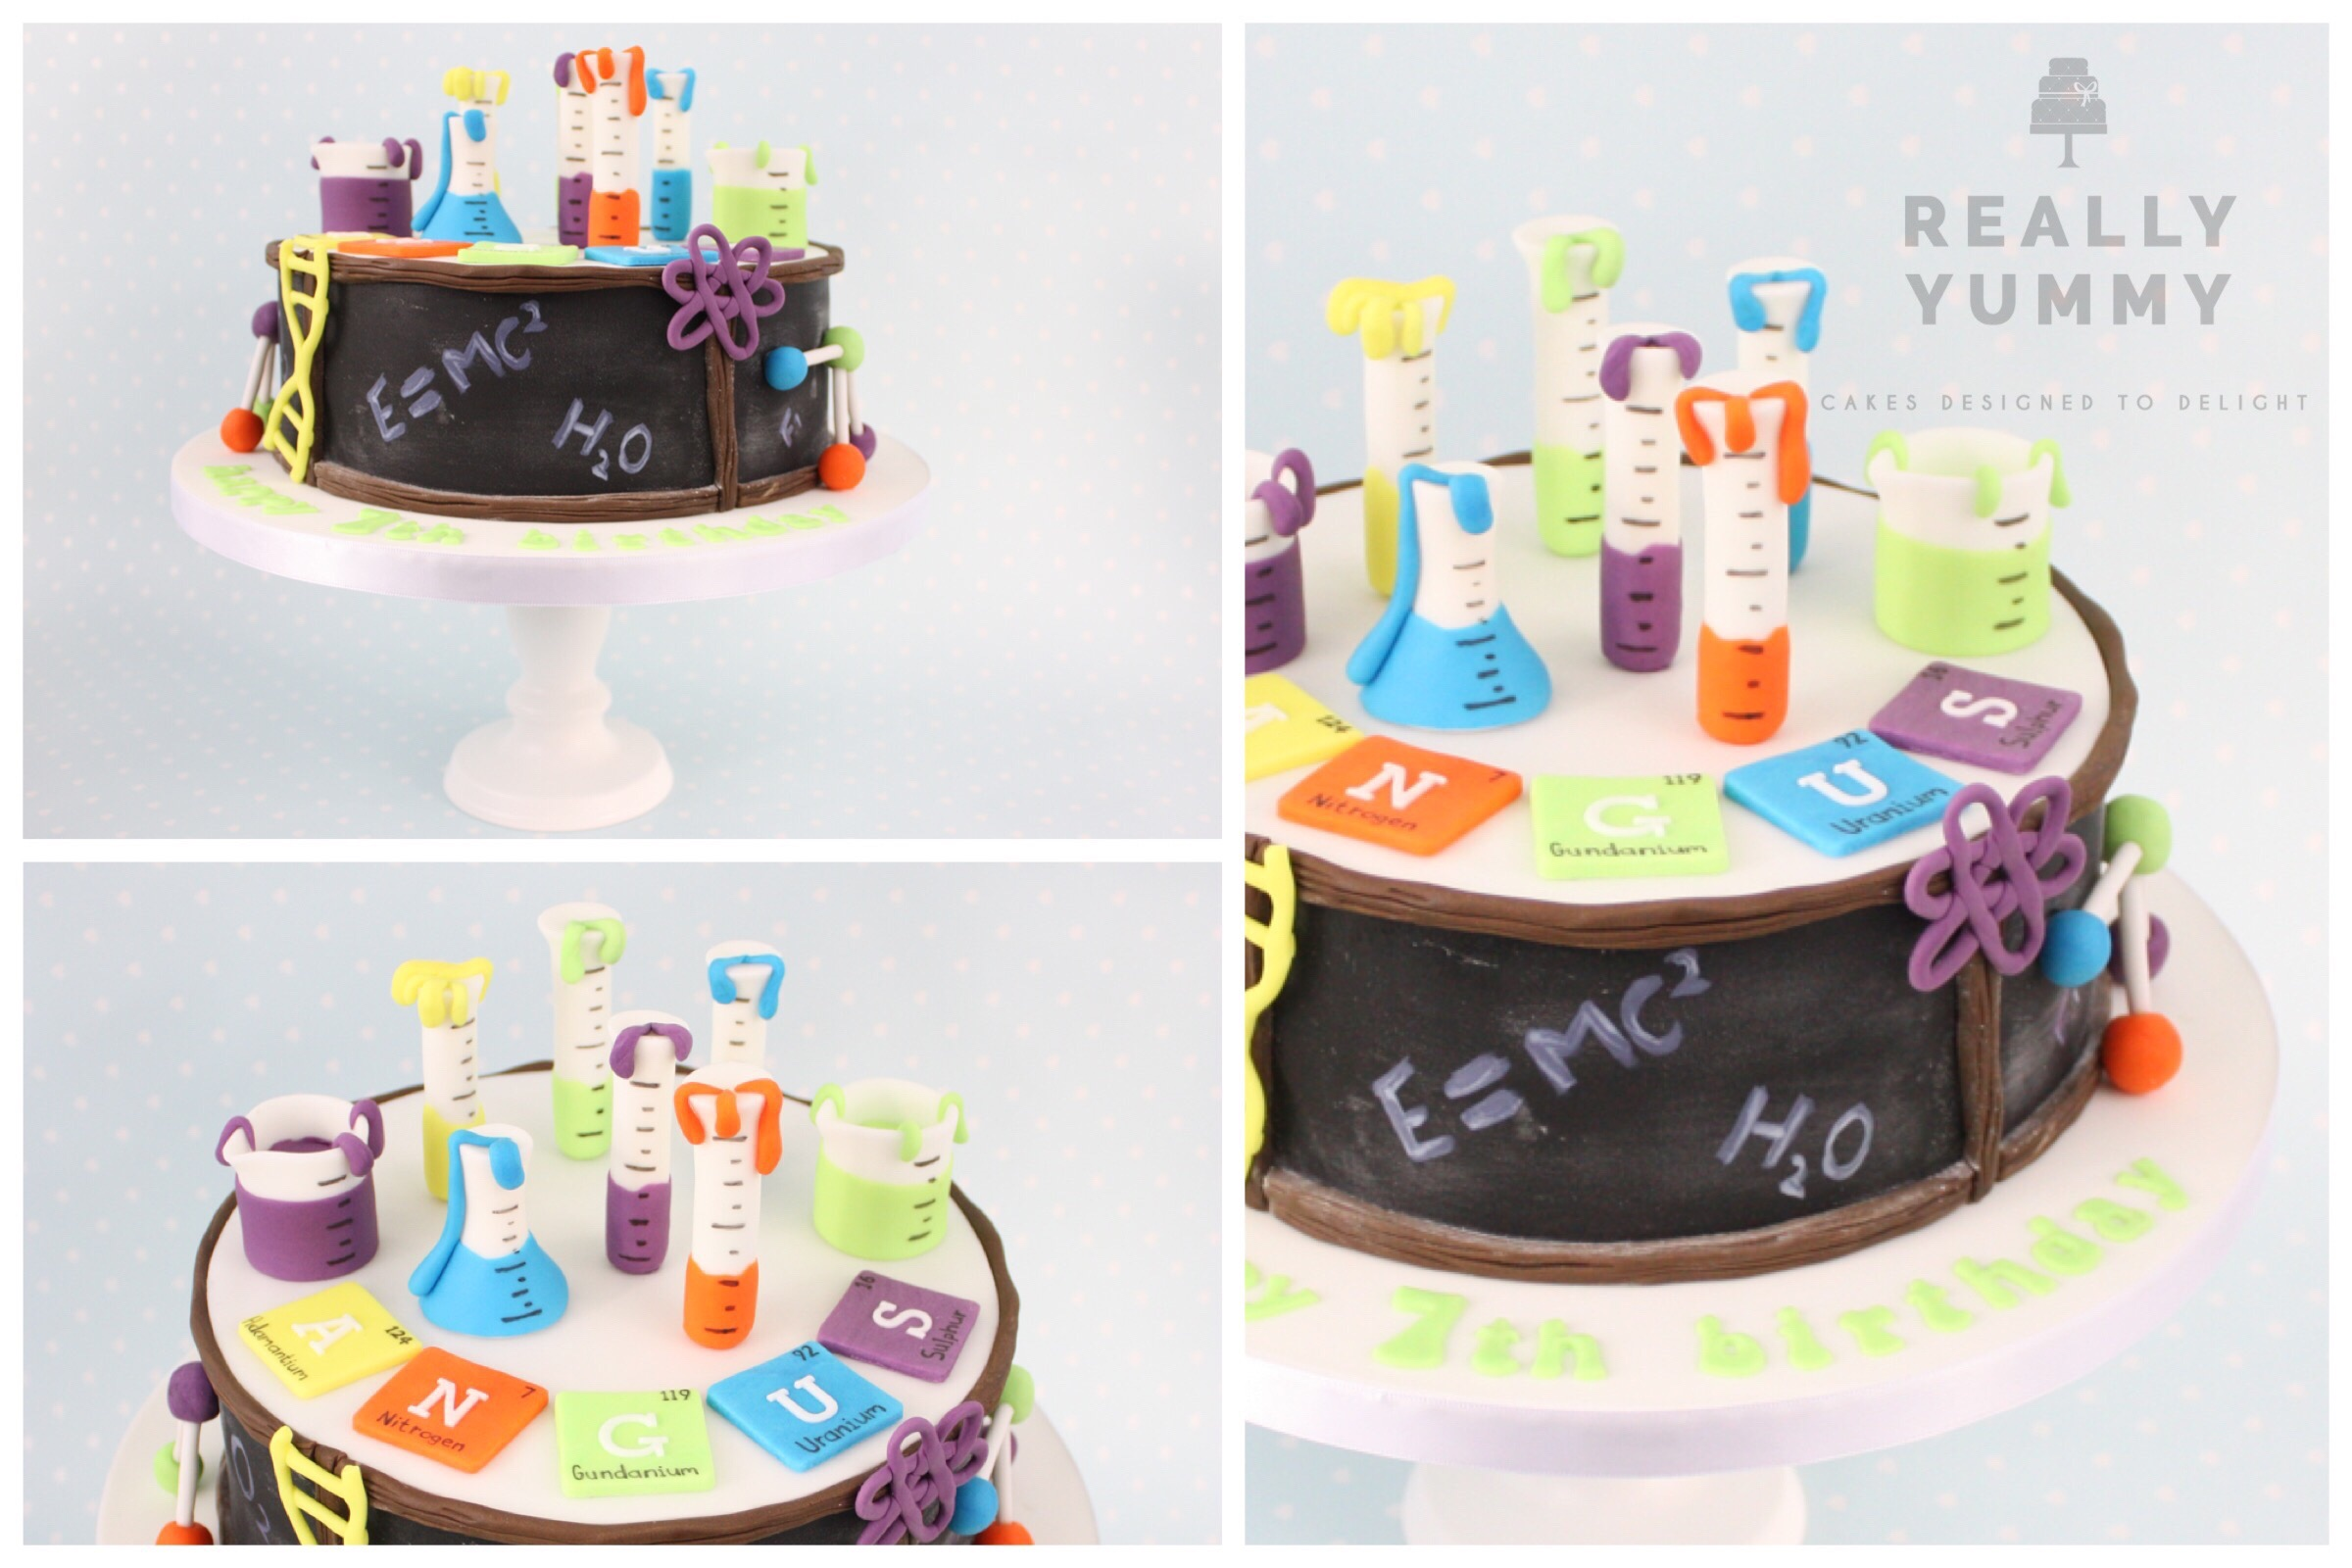 Science cake with test tubes and chemical symbols